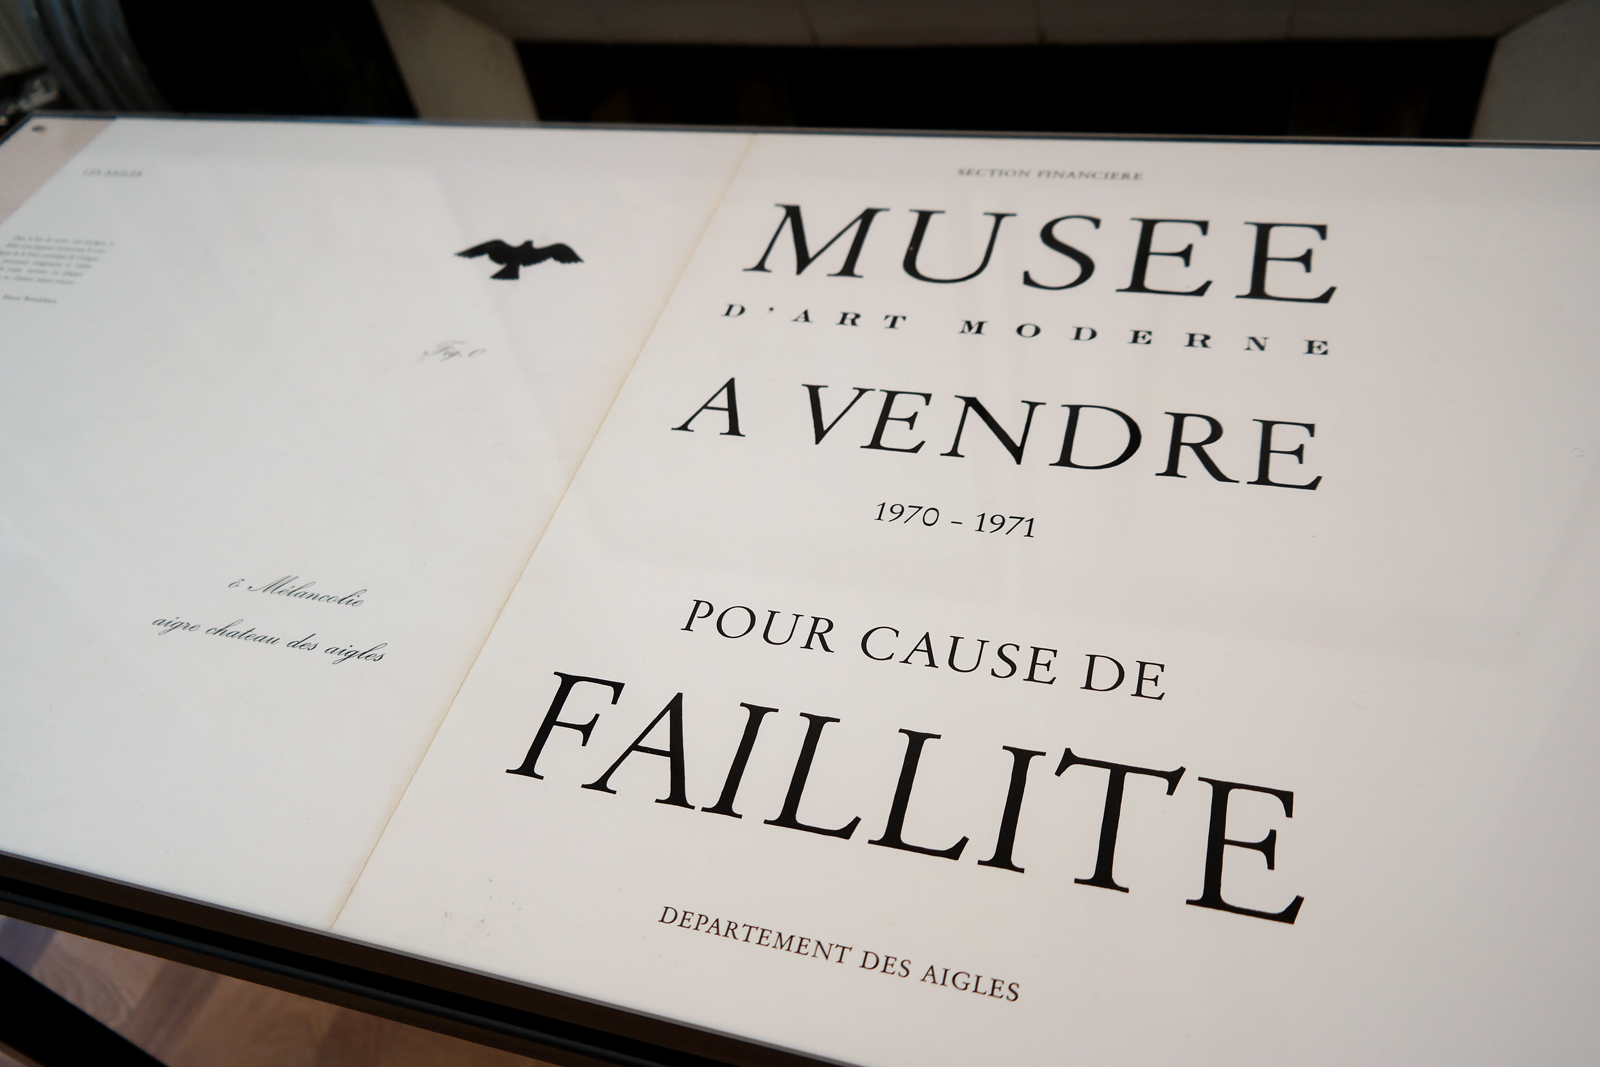 Musee-d-art-moderne-1971-1970-pour-cause-de-faillite-départements-des-aigles-Estate-Marcel-Broodthaers-exposition-Monnaie-de-Paris-MACBA-collection